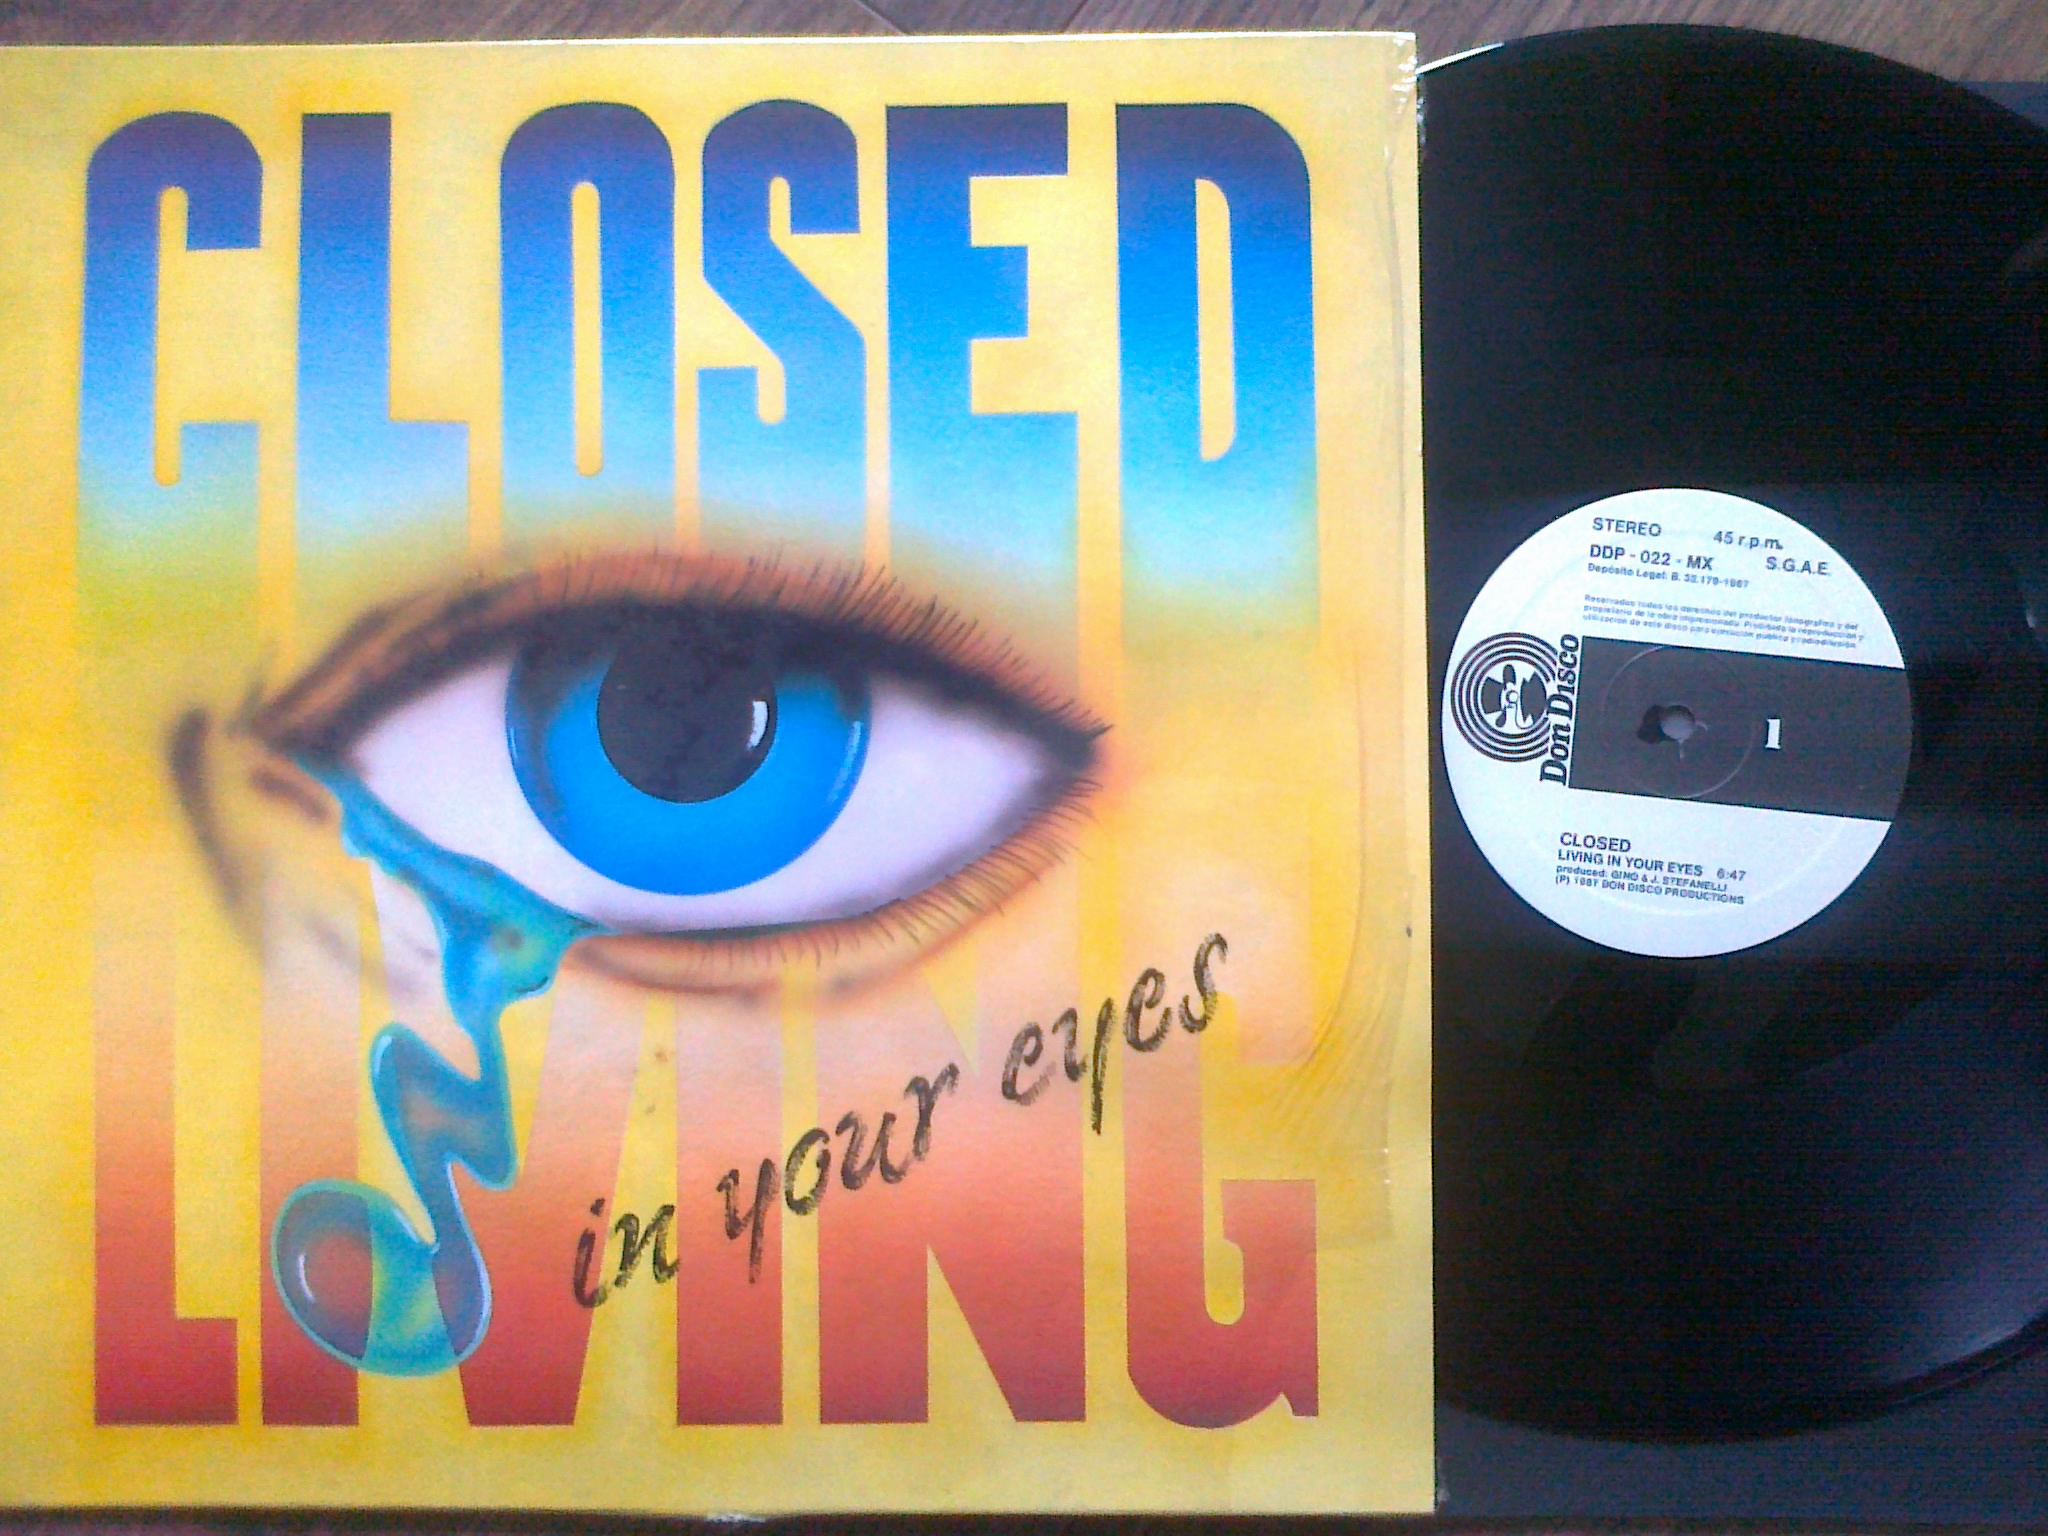 Closed - Living in your eyes